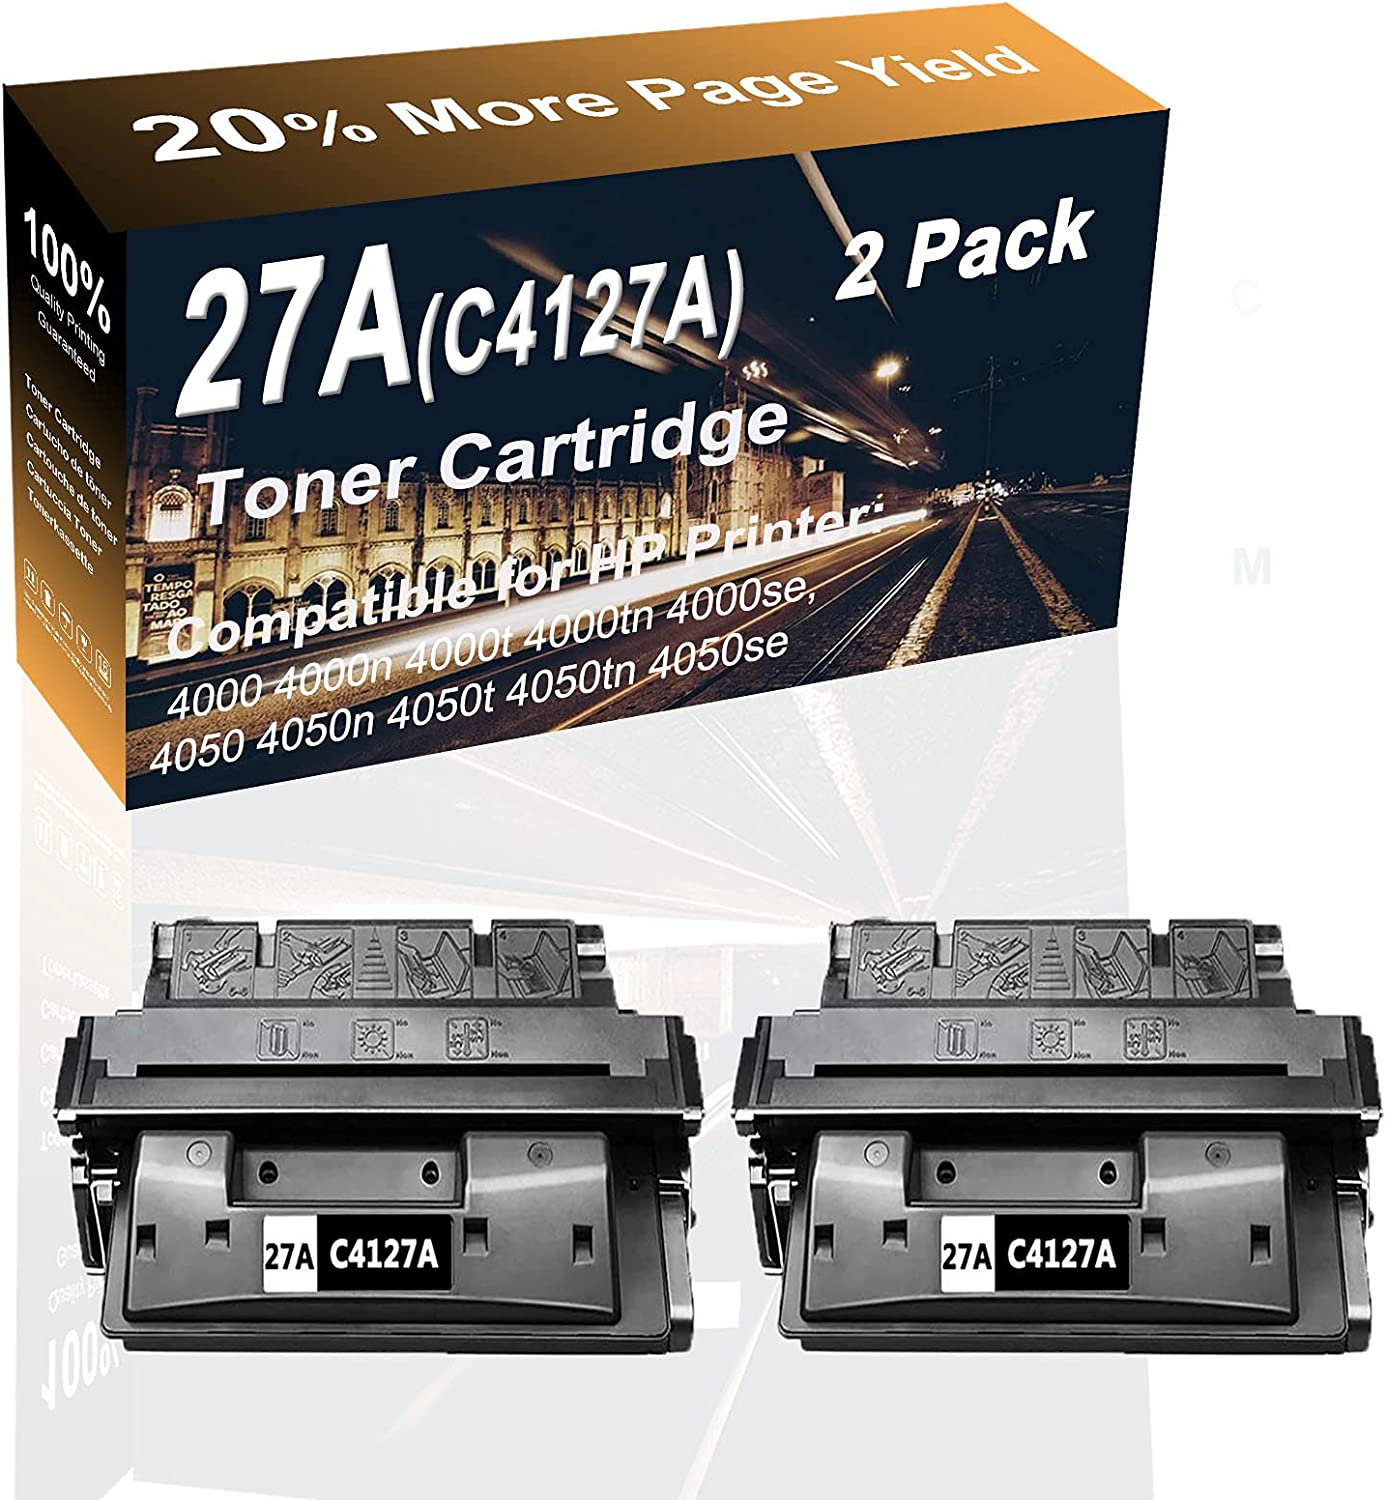 2-Pack (Black) Compatible High Capacity 27A (C4127A) Laser Printer Toner Cartridge use for HP 4000, 4000n, 4000t, 4000tn Printer